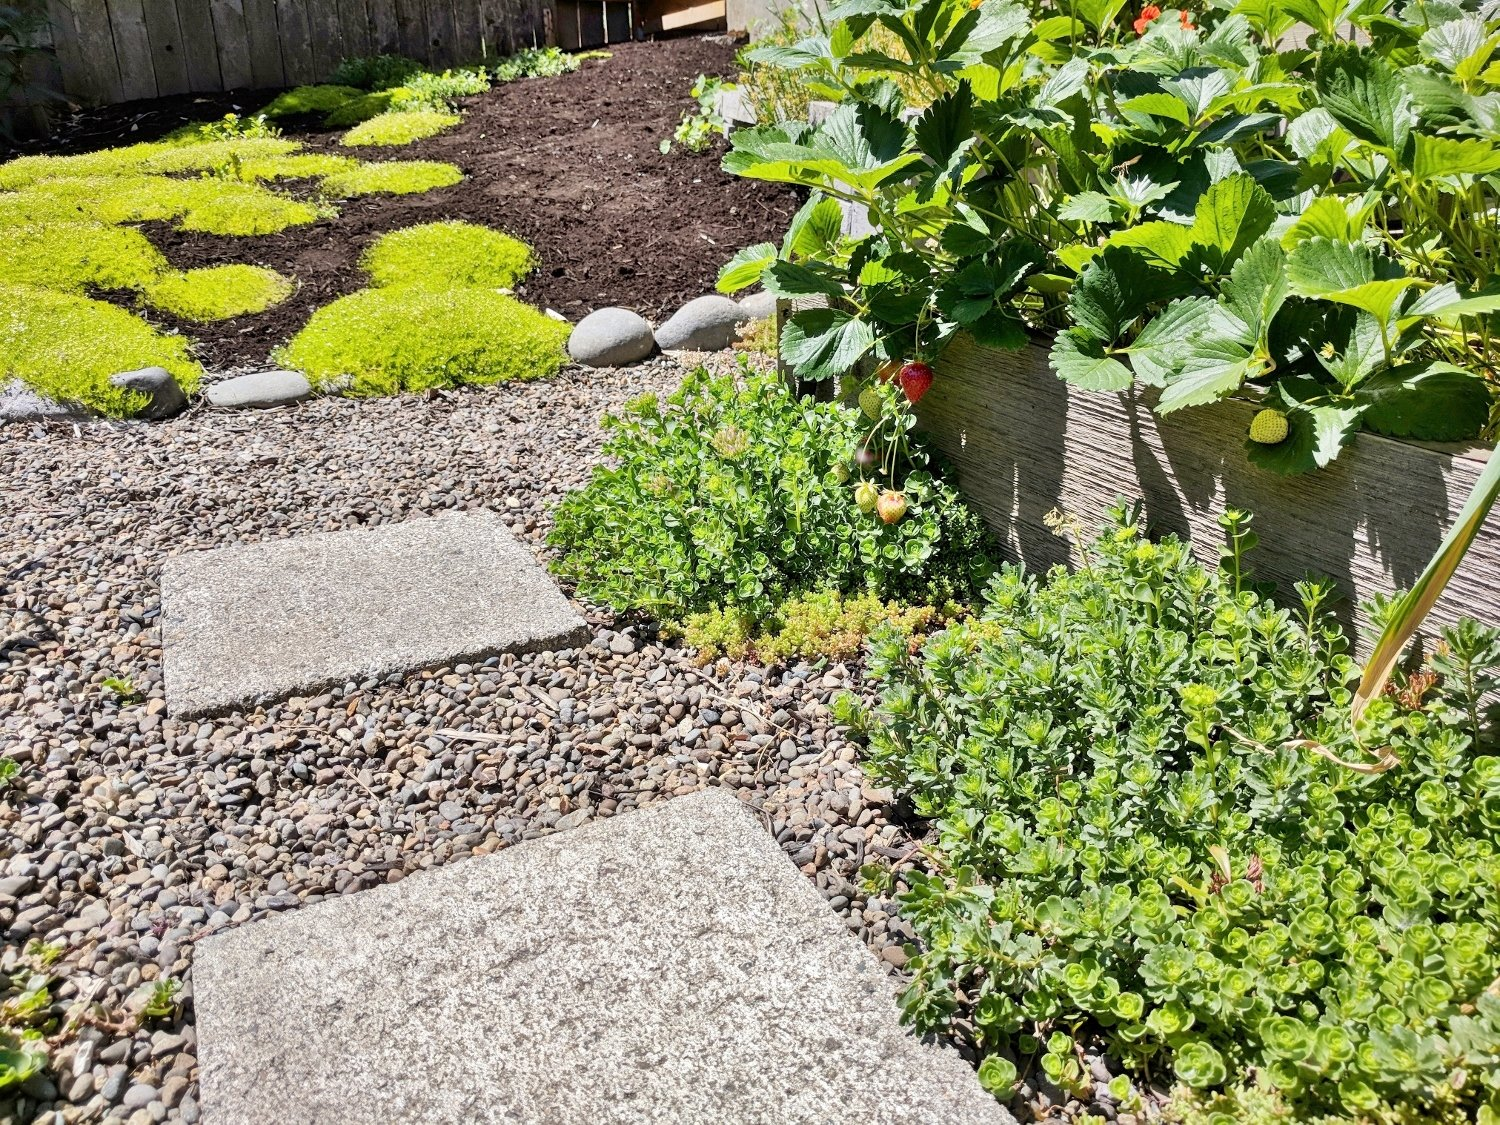 5 Pretty Landscaping Ideas for Your Raised Beds on water garden, flagstone garden, pea plant problems, straw garden, dirt garden, crushed glass garden, pea enation mosaic virus, top soil garden, sand garden, potting soil garden, clay garden, landscape fabric garden, english garden, mulch garden, peat moss garden, plants garden, landscaping garden, pea straw mulch, shovel garden, naturalistic garden,